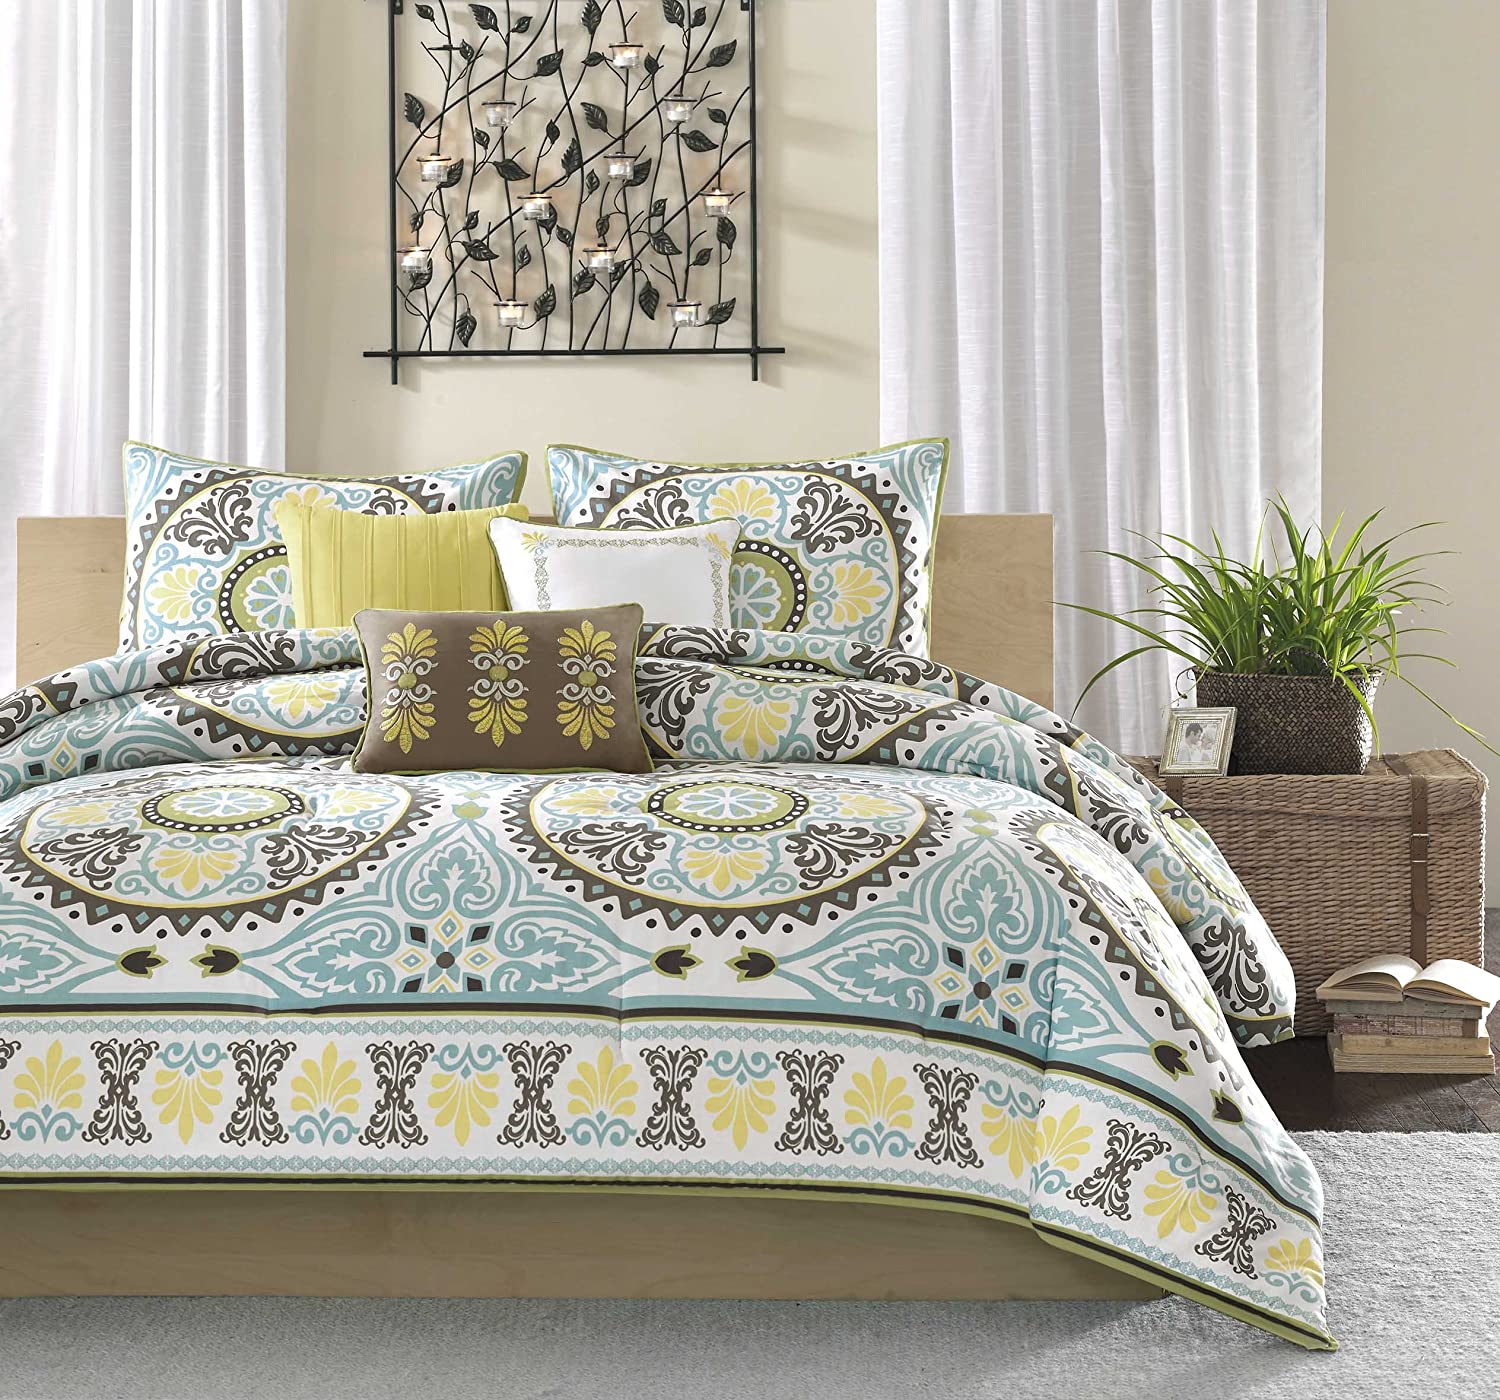 cozy bedding marvelous madison idea samara piece your decor park quilt set for canada to interior quiltmarvelous complete dustin larissa comforter home beatrice